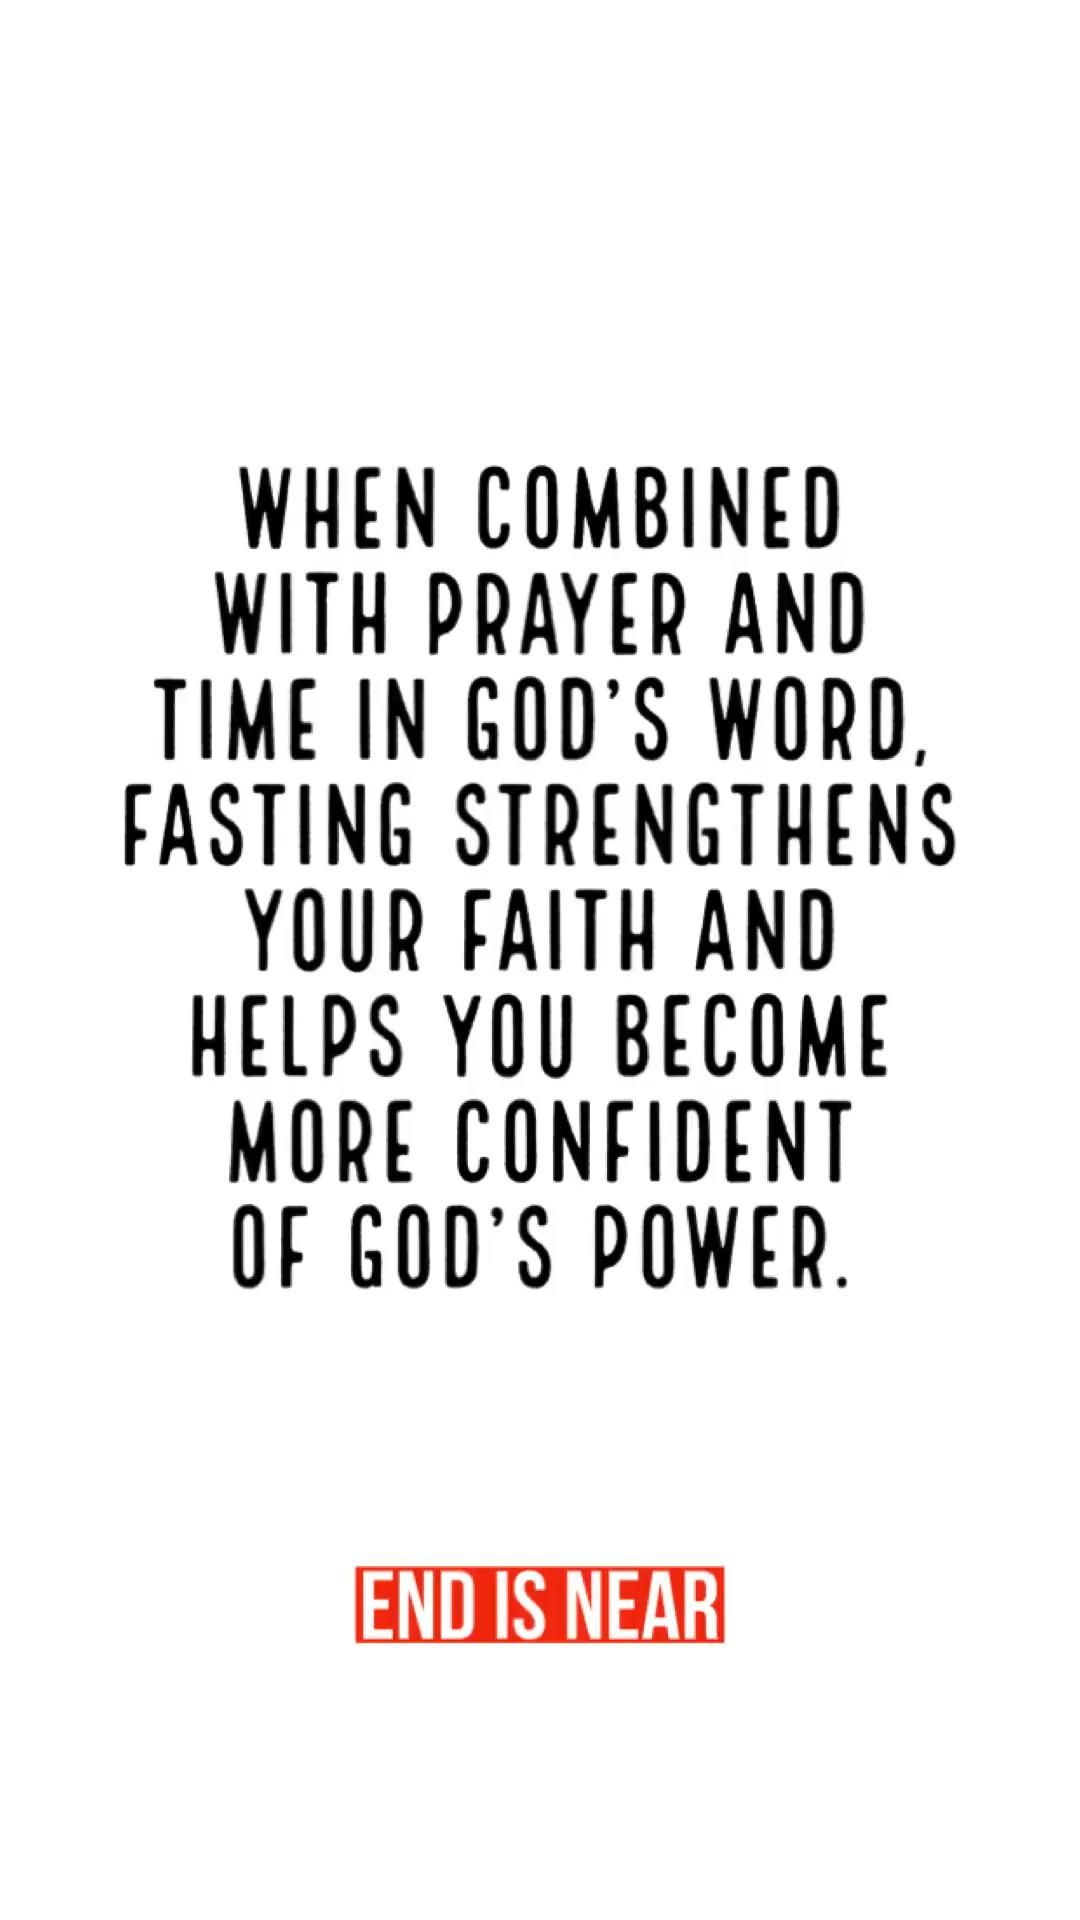 More confident in God's Power.